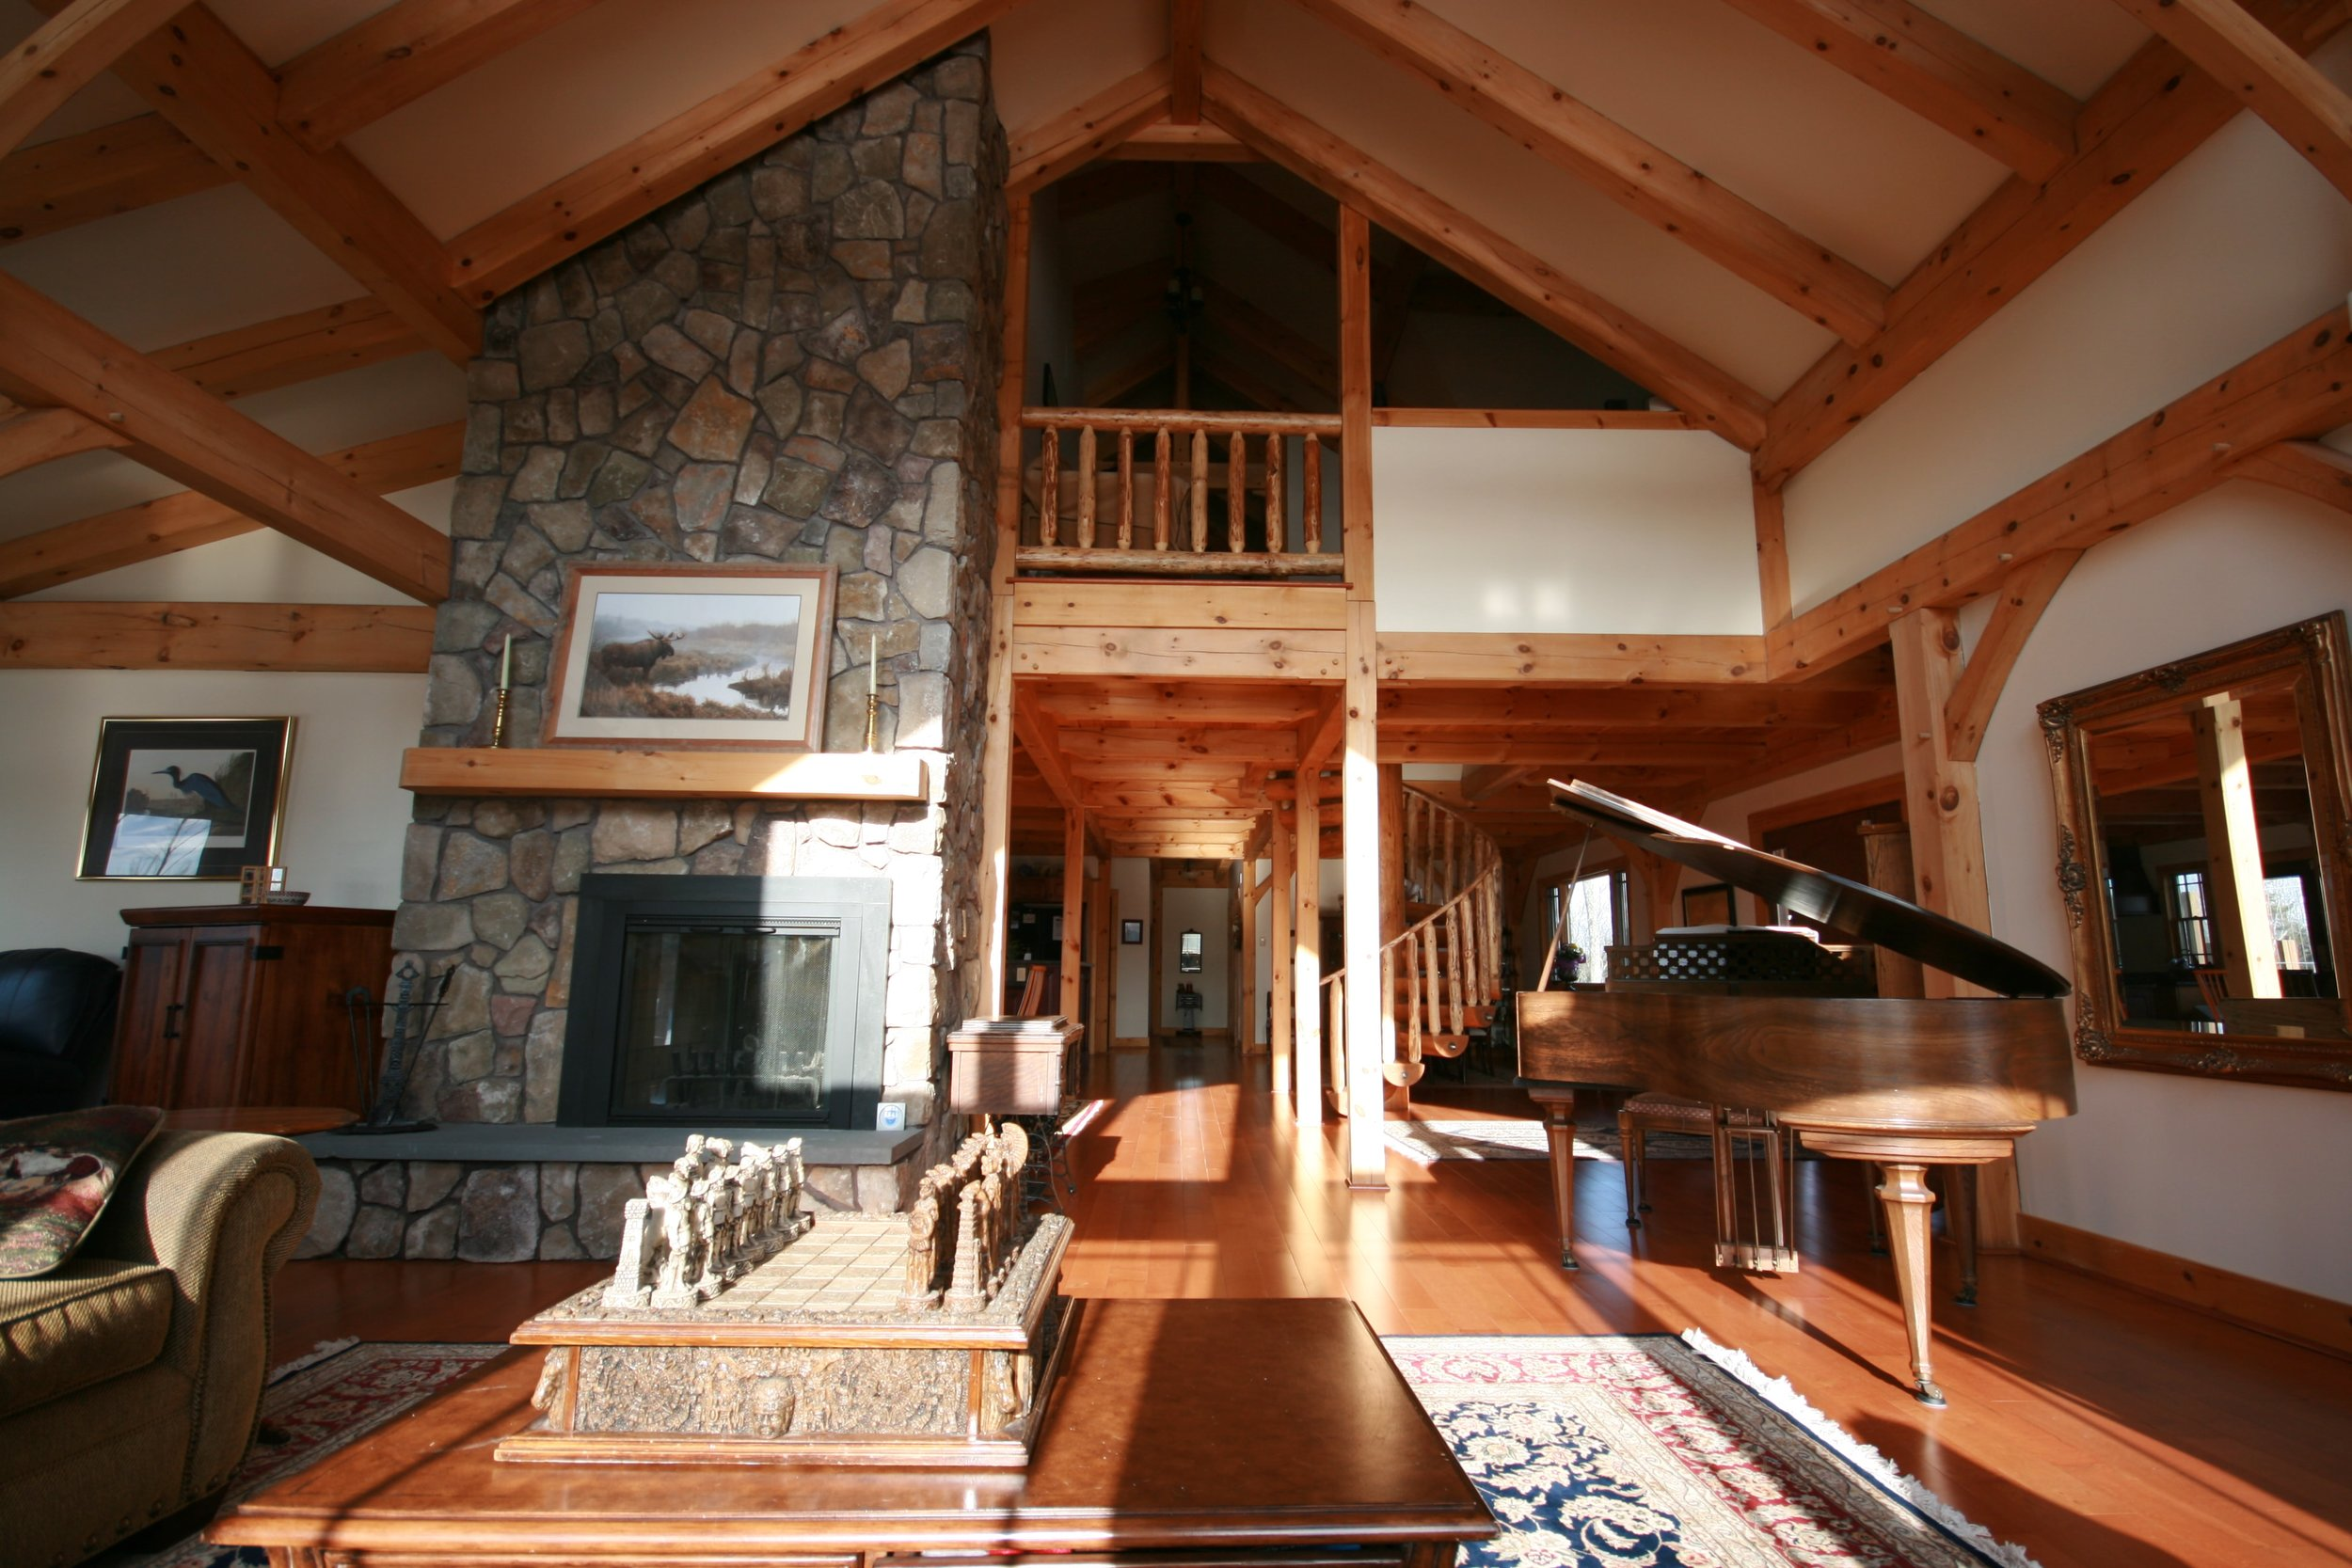 Dramatic spaces are common in timber frame homes.